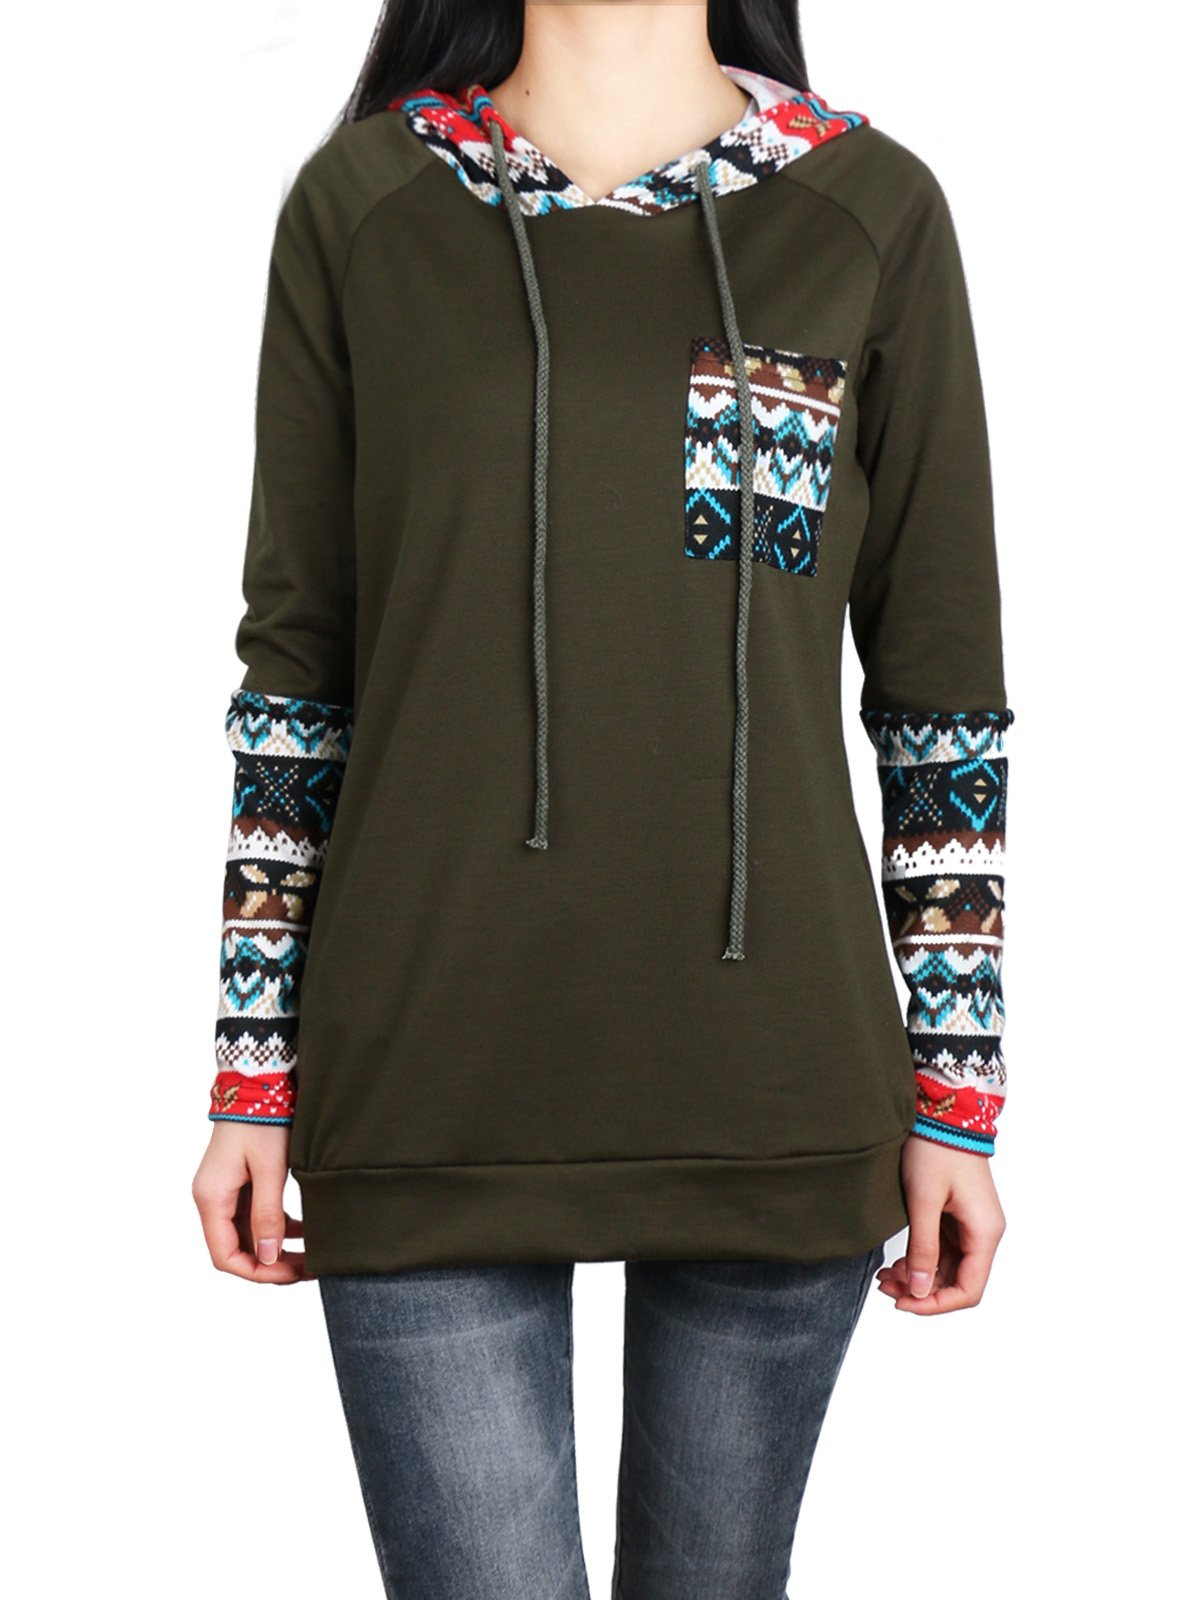 Anna Smith Womens Hoodie,Active Long Sleeve Christmas Sweatshirt with Pocket Round Collar Adjustable Drawstring Tie Geometric Print Banded Bottom Comfy Spandex Polyester Baggy Tunic XXL Army Green.